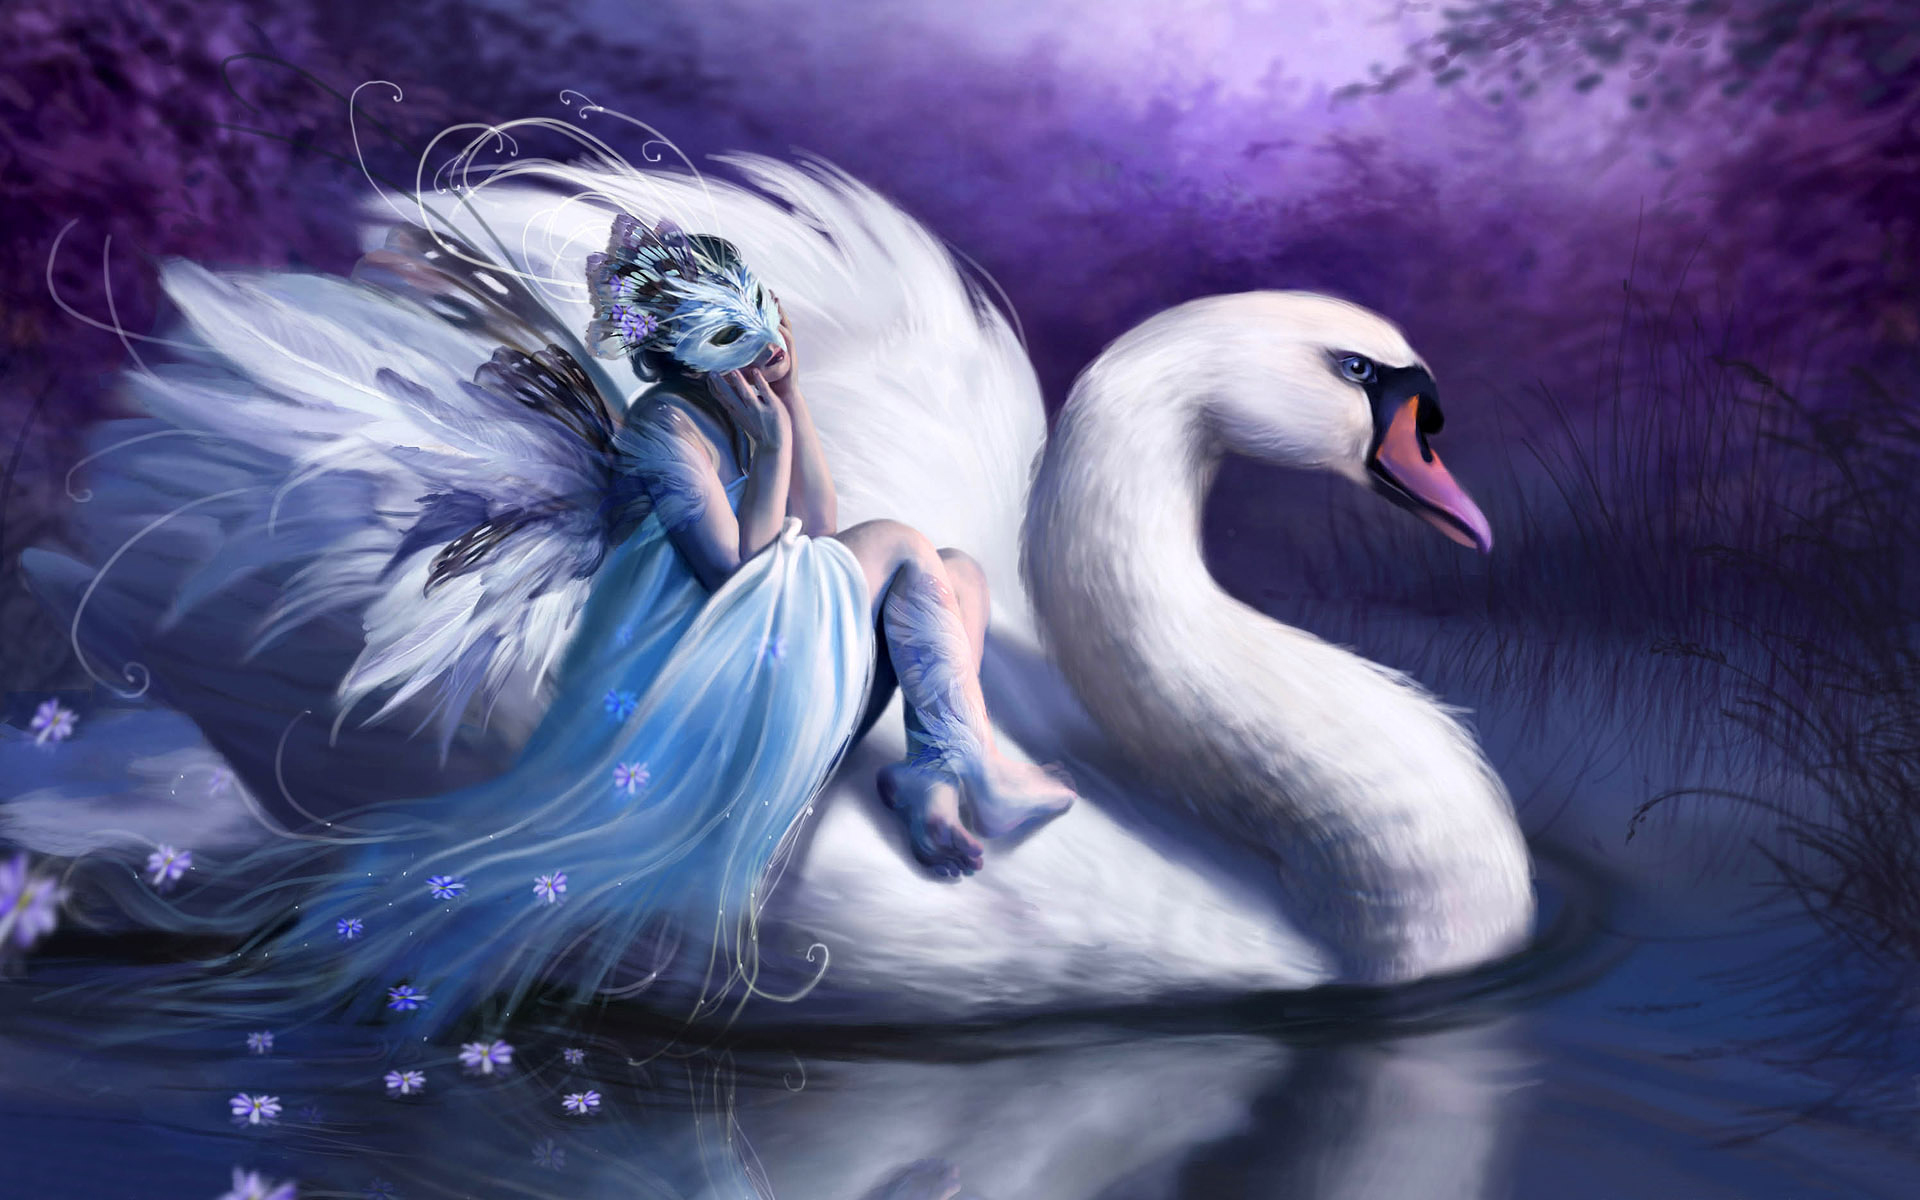 Masked girl on a swan